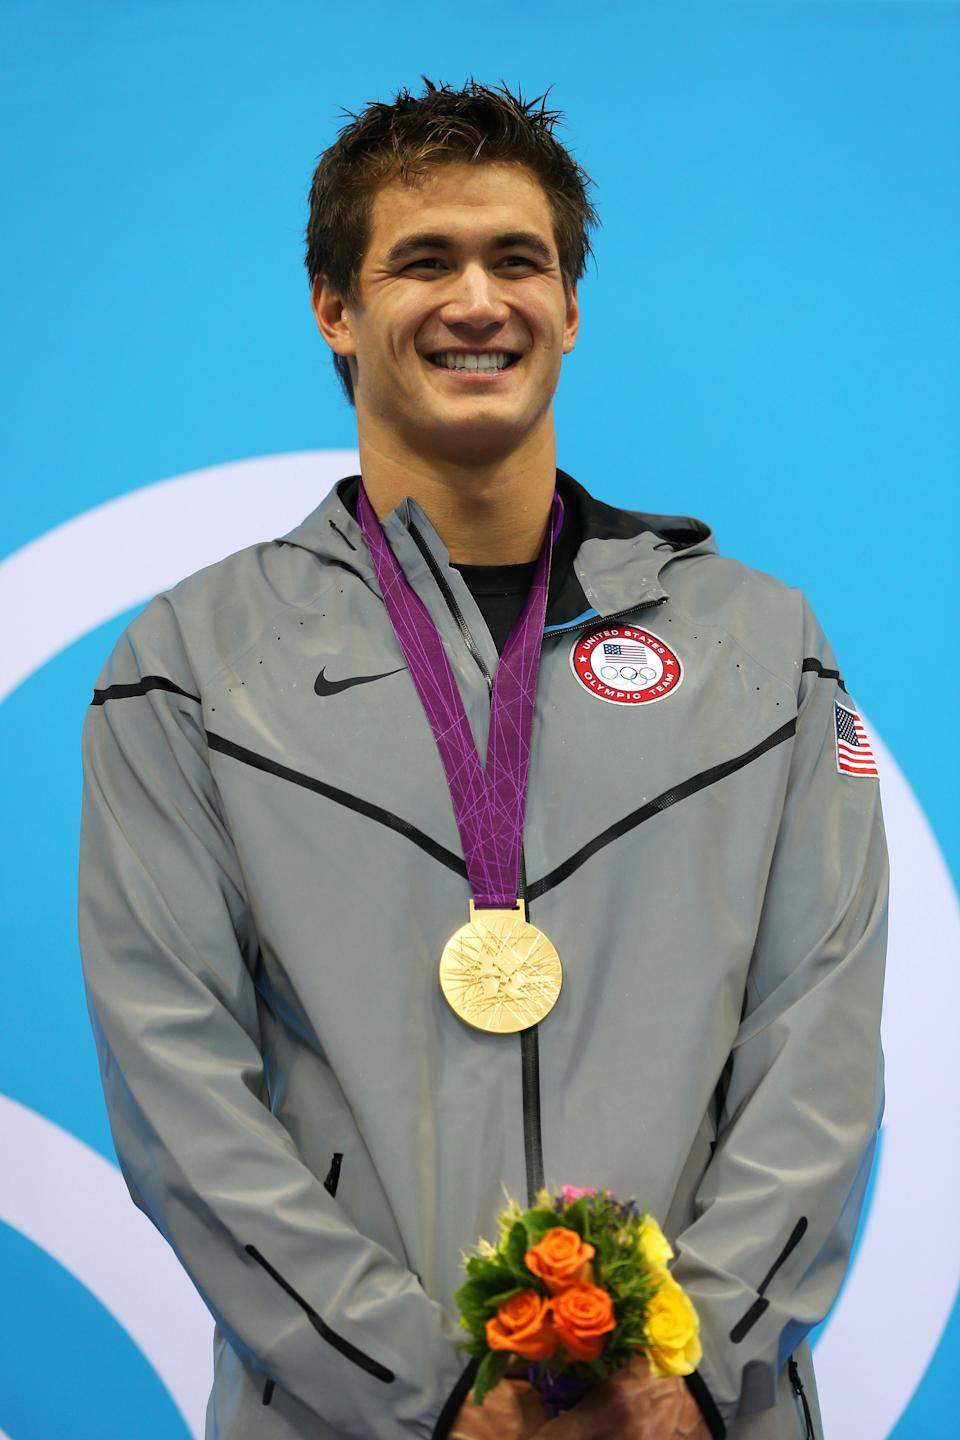 After taking part in one of the most historic Olympic events in history, Nathan Adrian has lots to be proud of. The well-spoken gold medalist, Nathan Adrian of the United States, has become a favorite amongst the ladies. (Photo by Clive Rose/Getty Images)